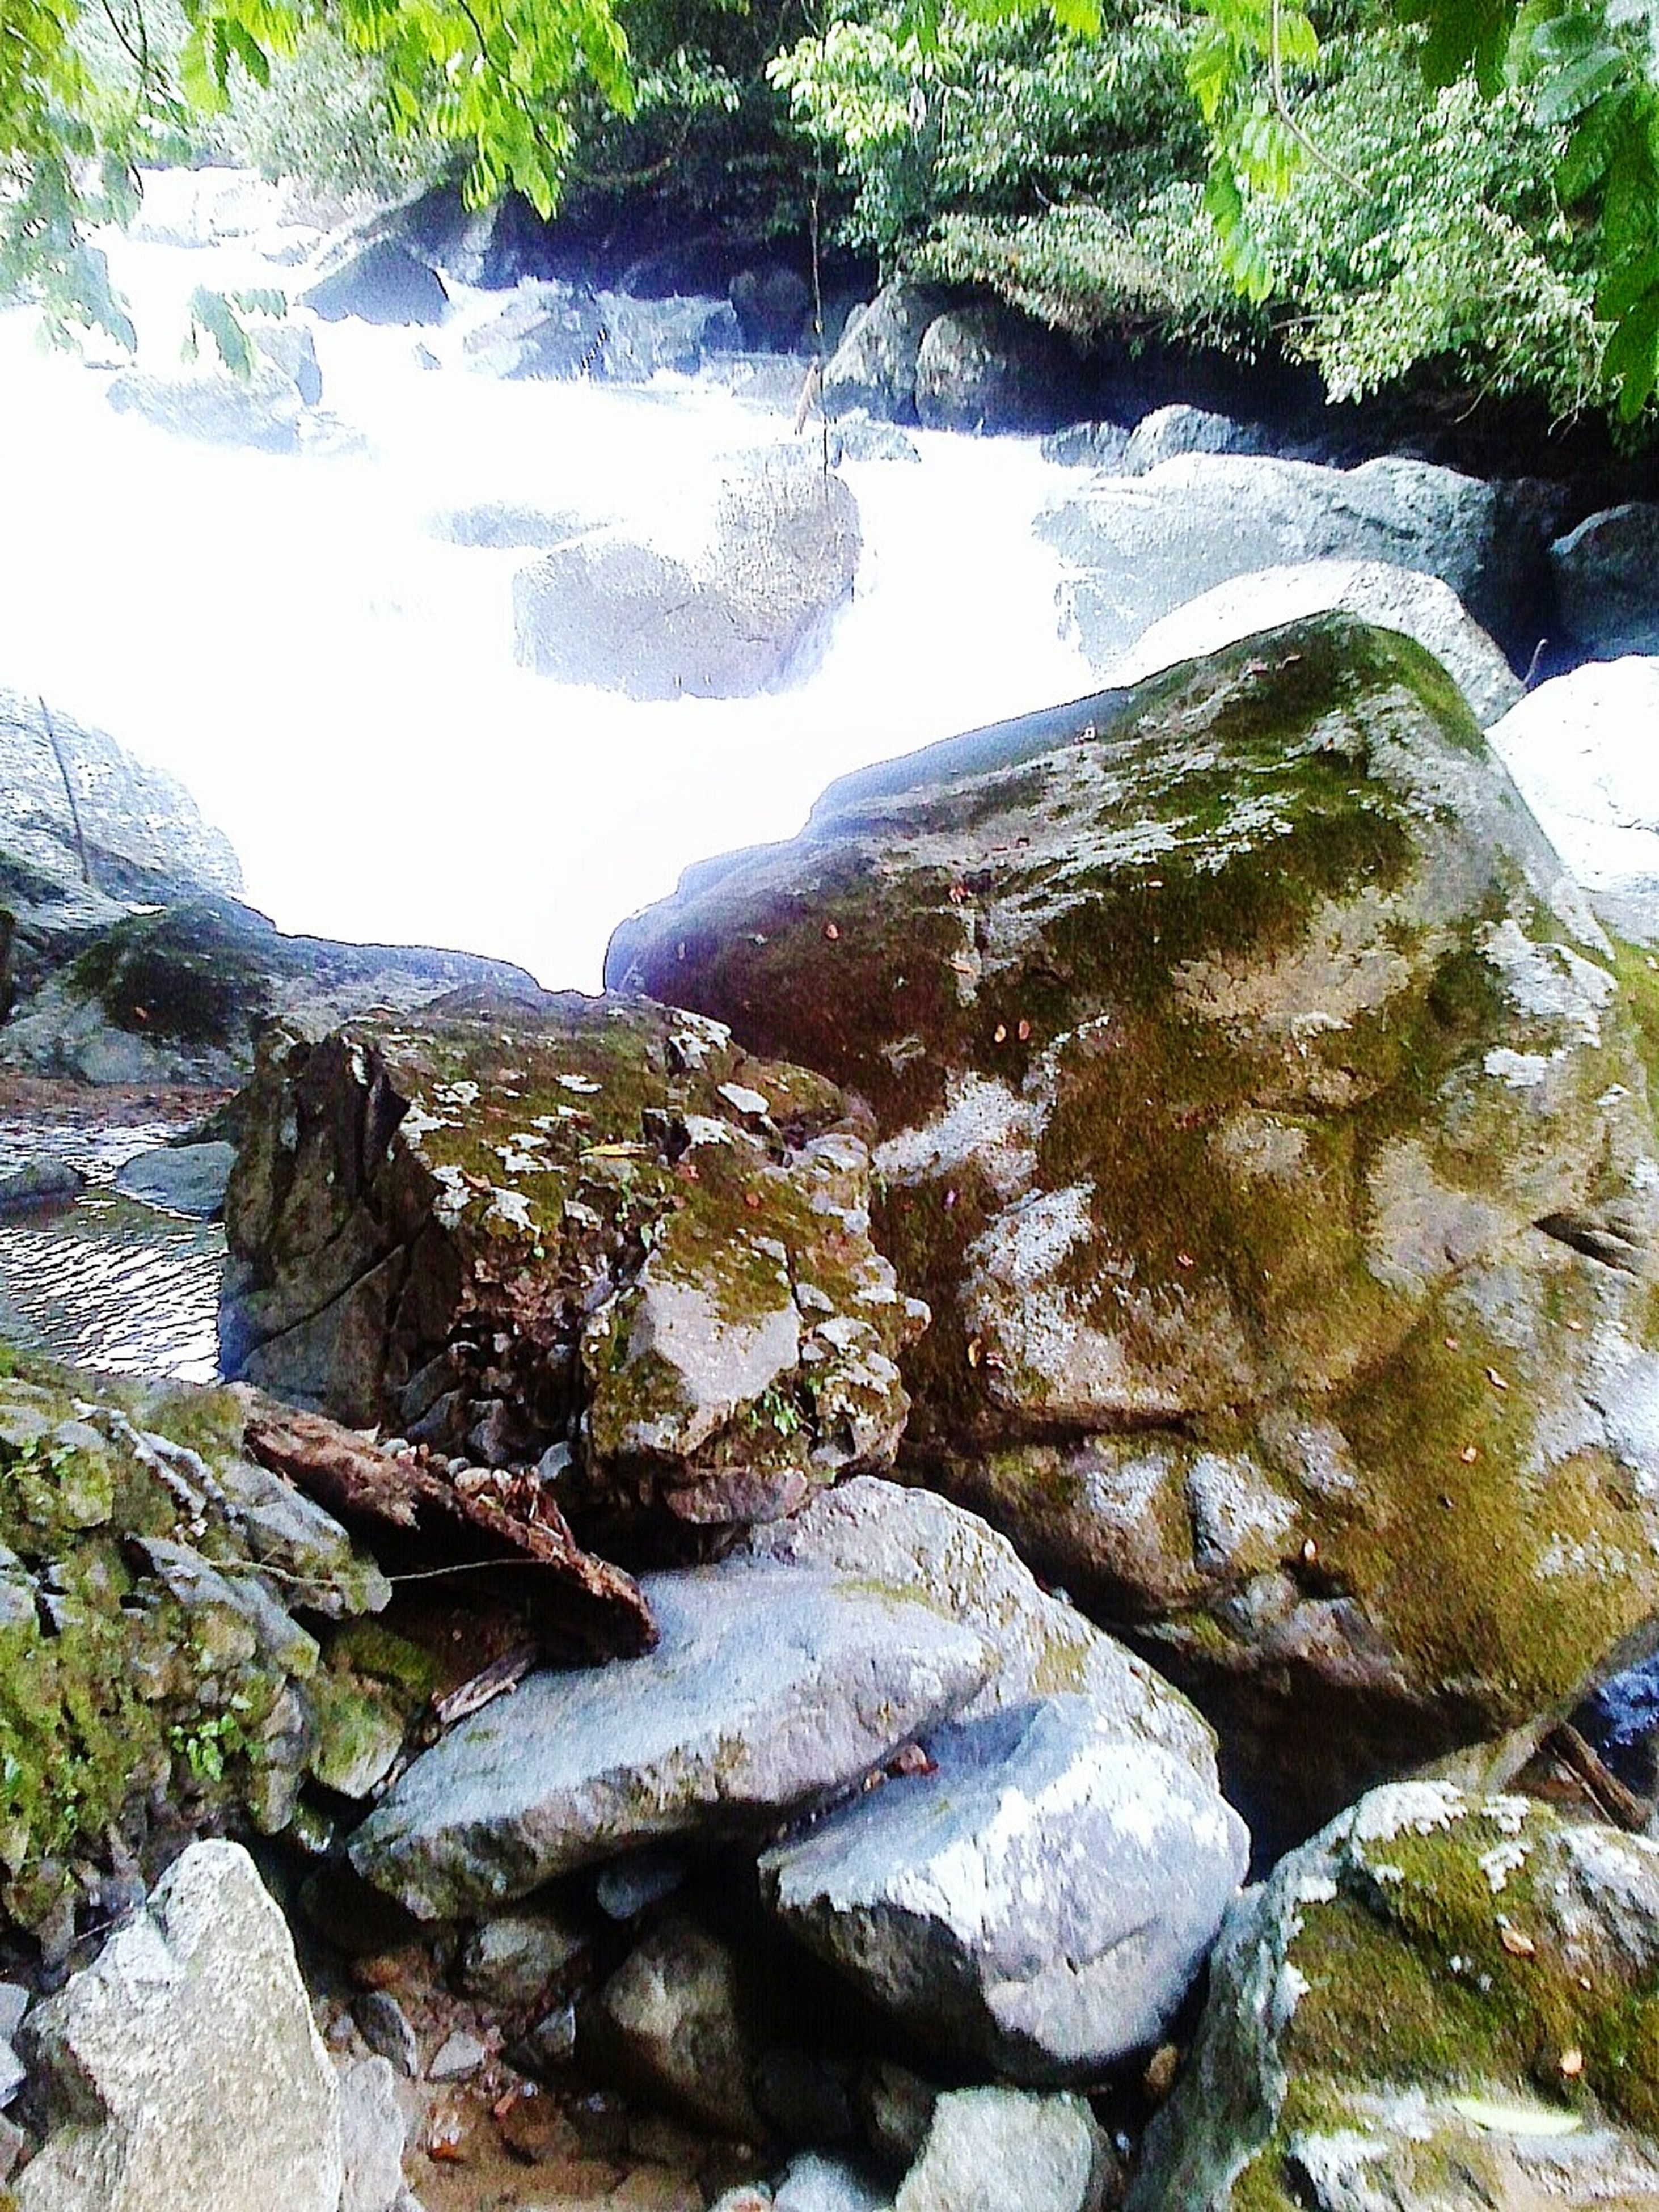 water, rock - object, tree, nature, beauty in nature, tranquility, flowing water, scenics, stream, forest, tranquil scene, river, growth, flowing, day, rock, stone - object, outdoors, no people, idyllic